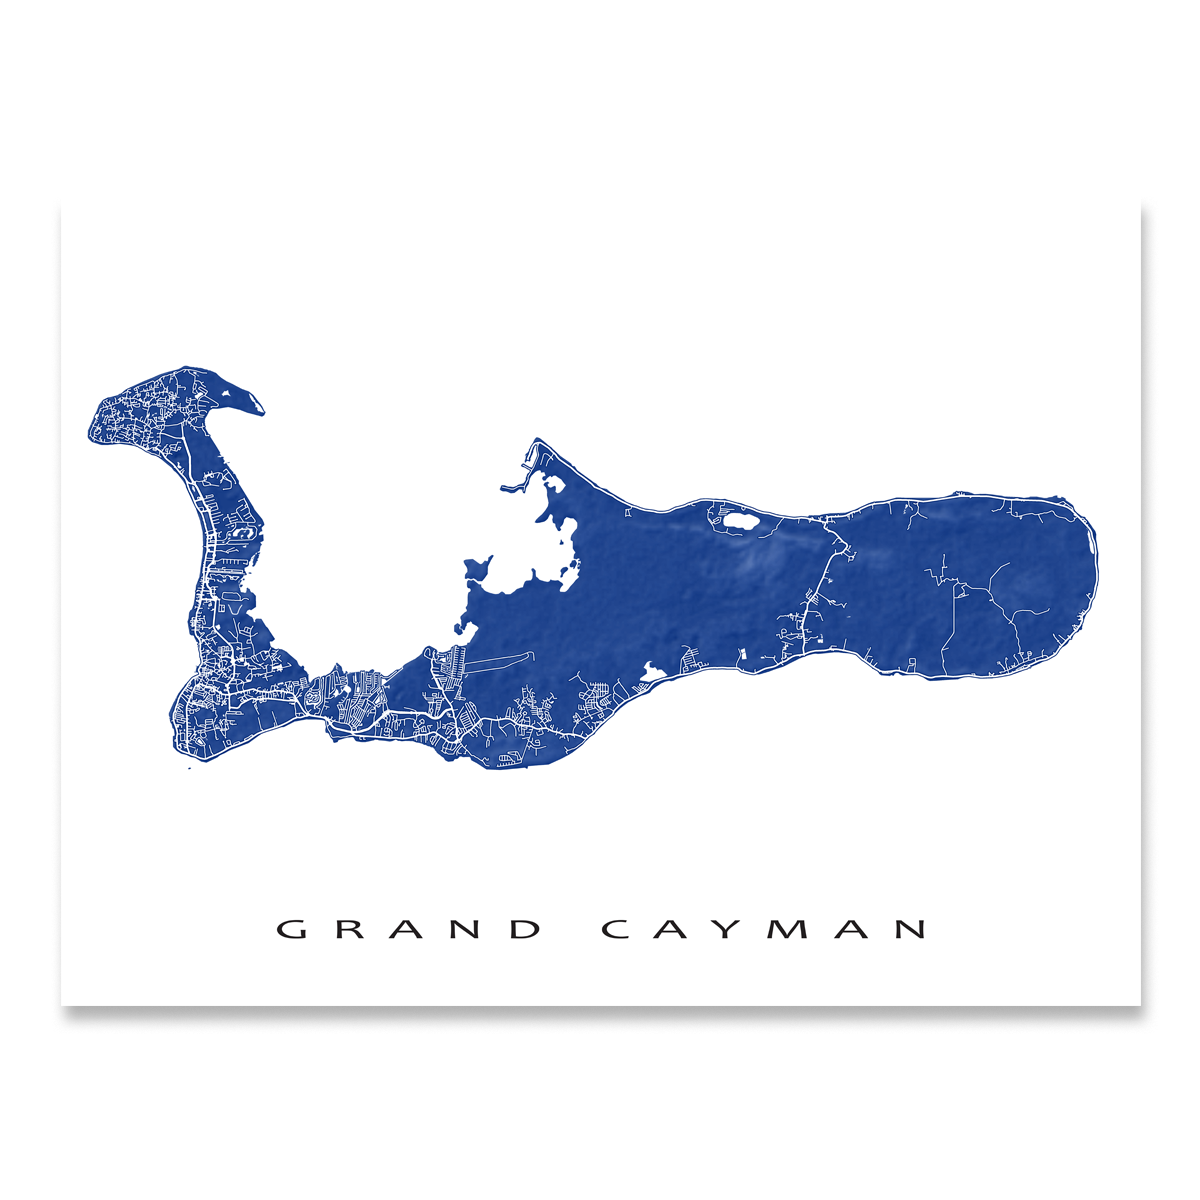 Grand Cayman map print with natural landscape and main island roads in Navy designed by Maps As Art.